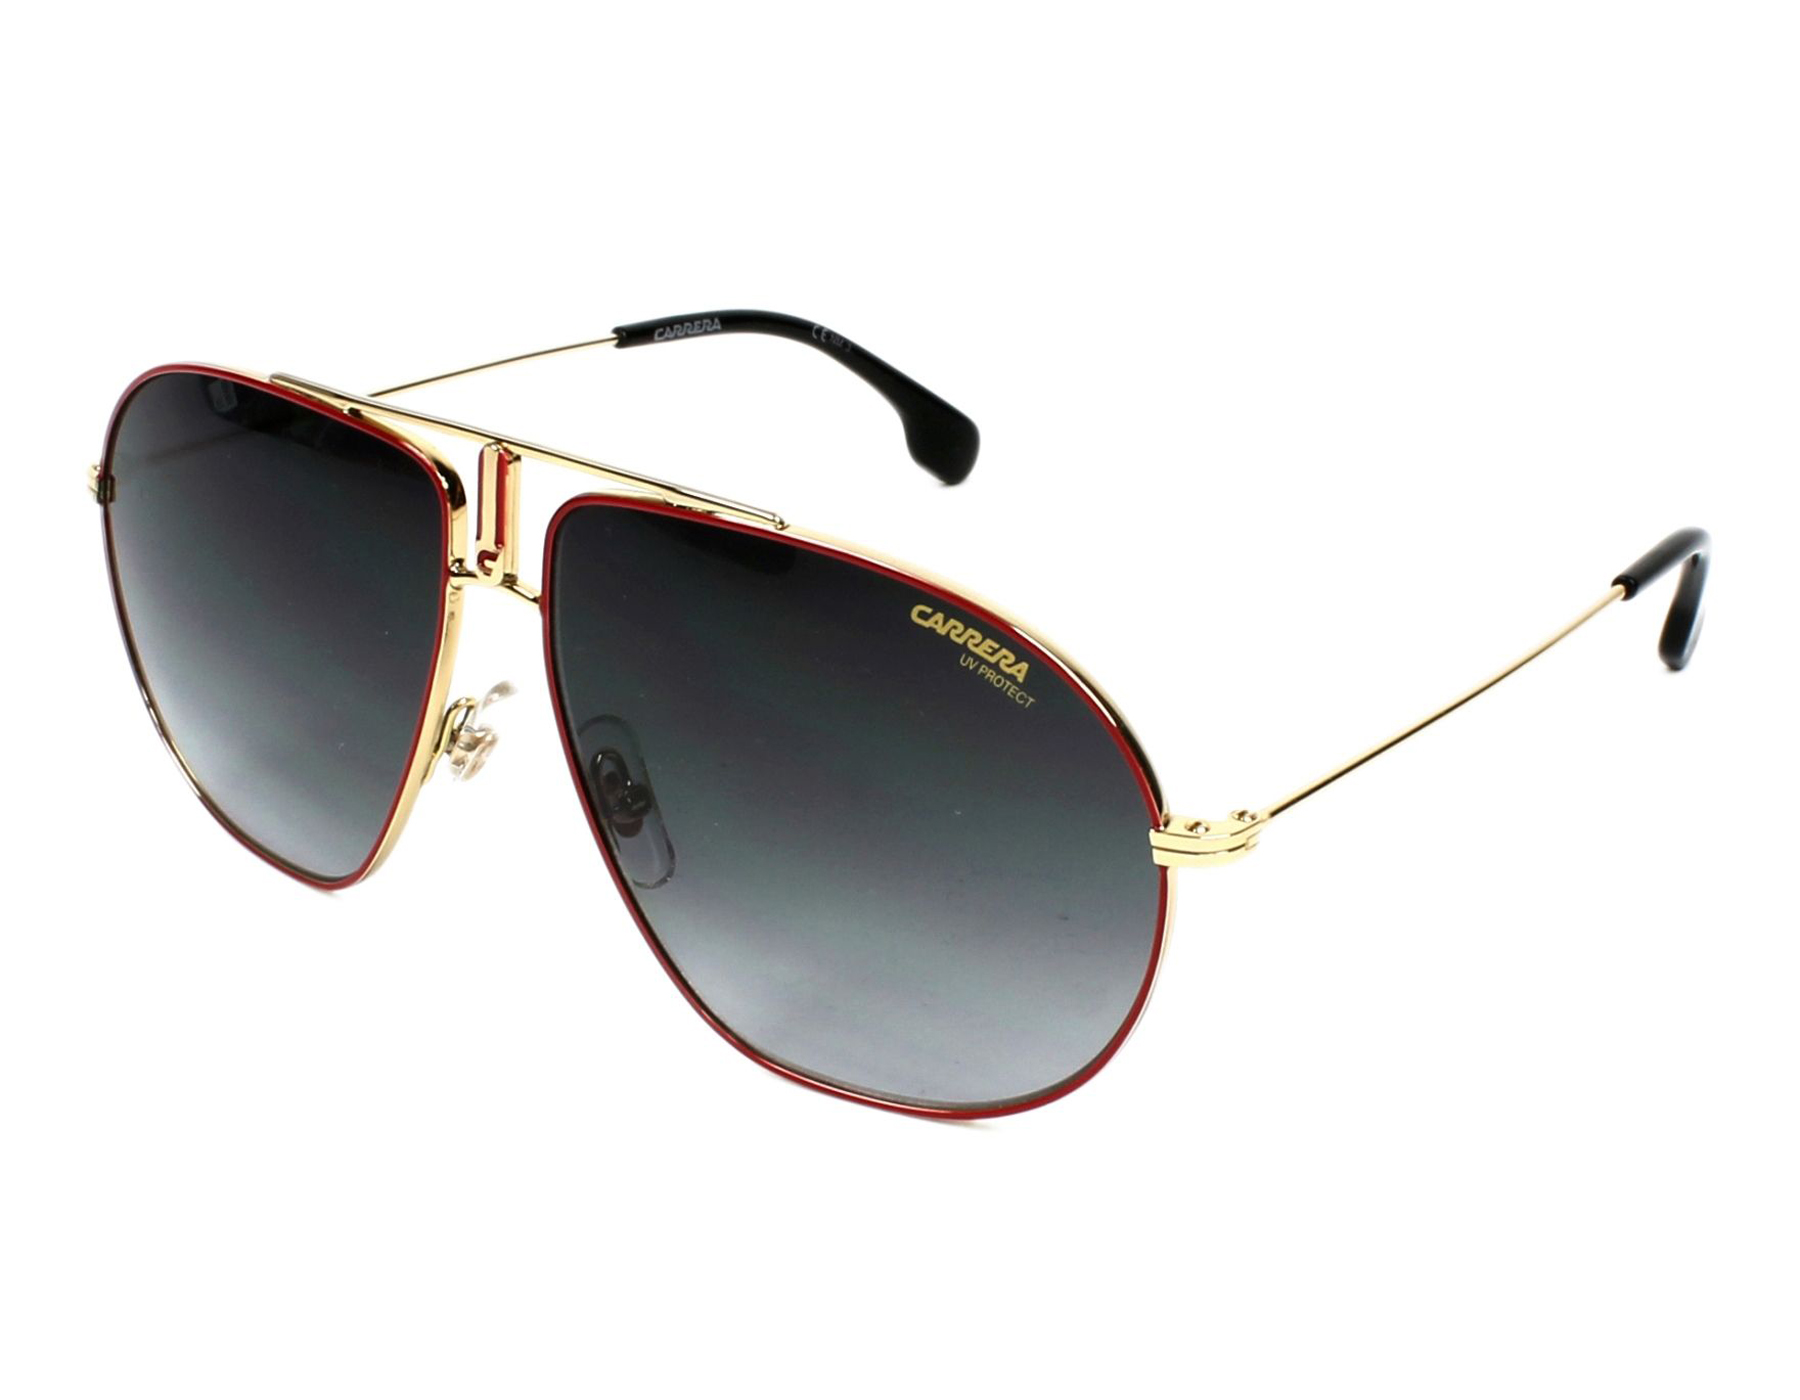 92e5974f64 Details about NEW Carrera Bound AU2 9O Gold Red   Dark Grey Gradient  Sunglasses